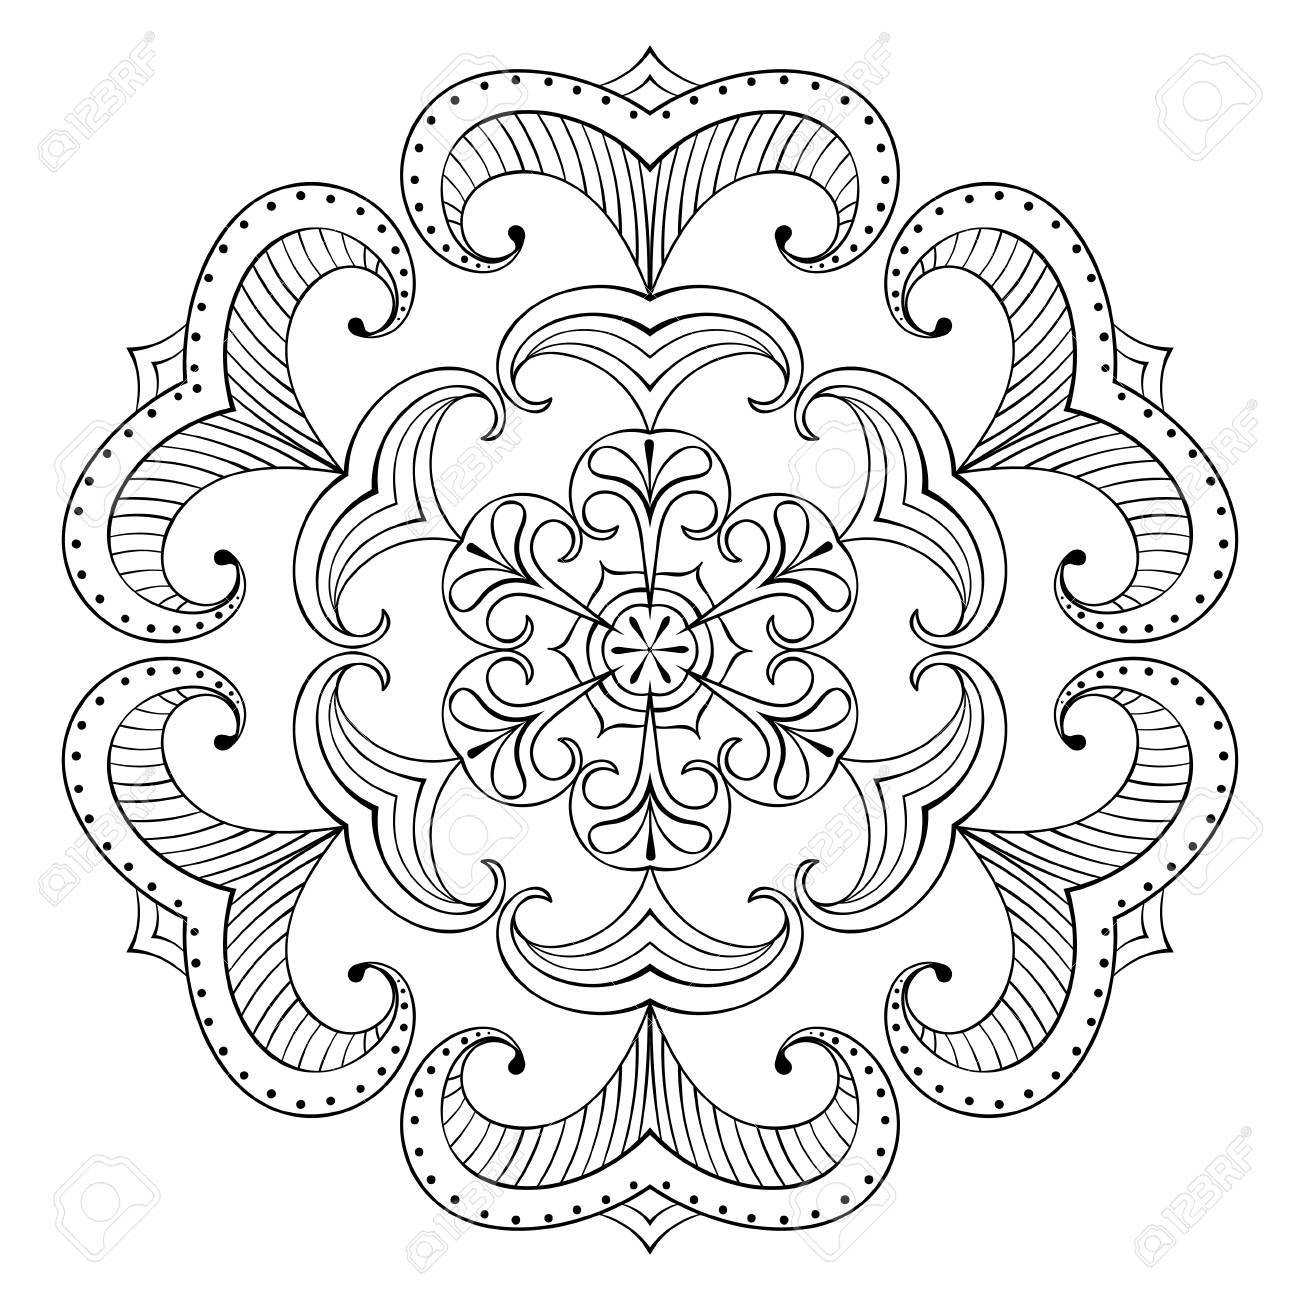 vector vector snow flake in zentangle style paper cutout mandala for adult coloring pages ornamental freehand winter illustration for decoration